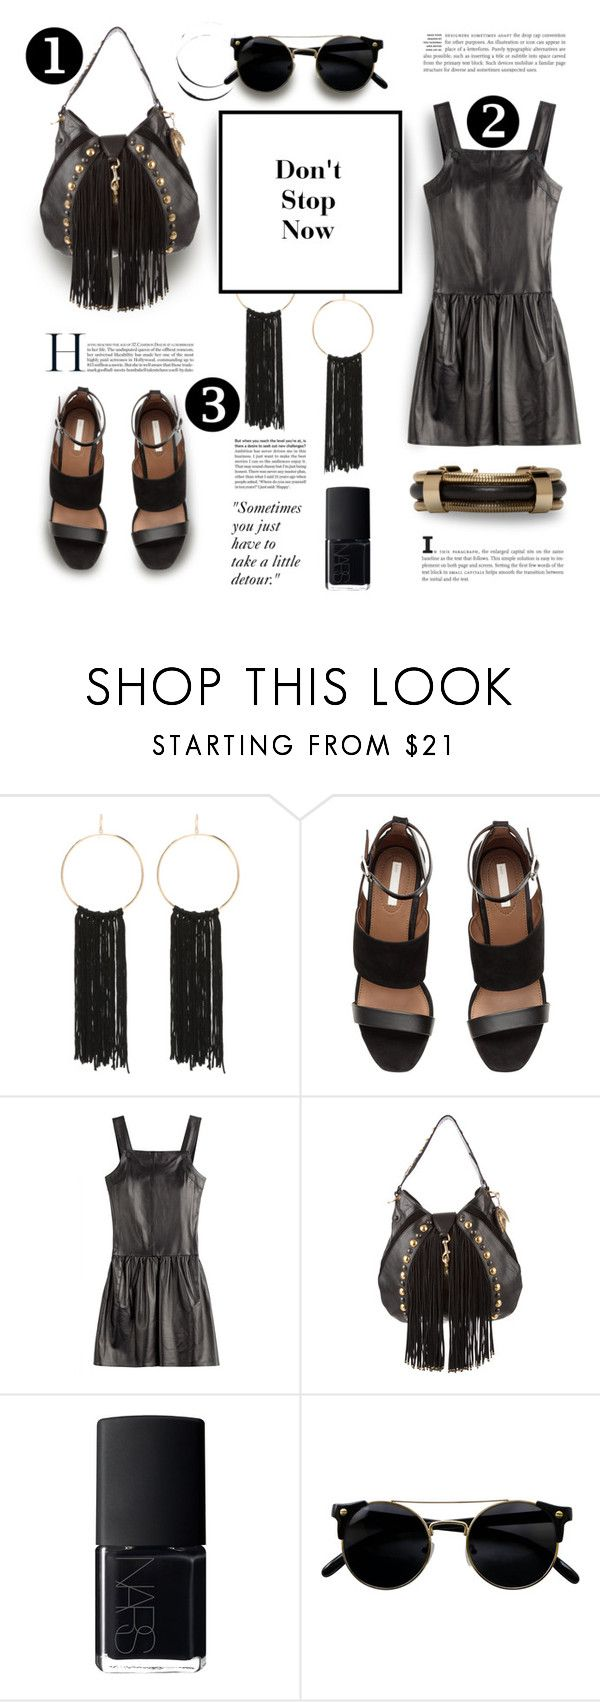 """black"" by vigilexi ❤ liked on Polyvore featuring Bebe, Karl Lagerfeld, Gucci, NARS Cosmetics and Isabel Marant"